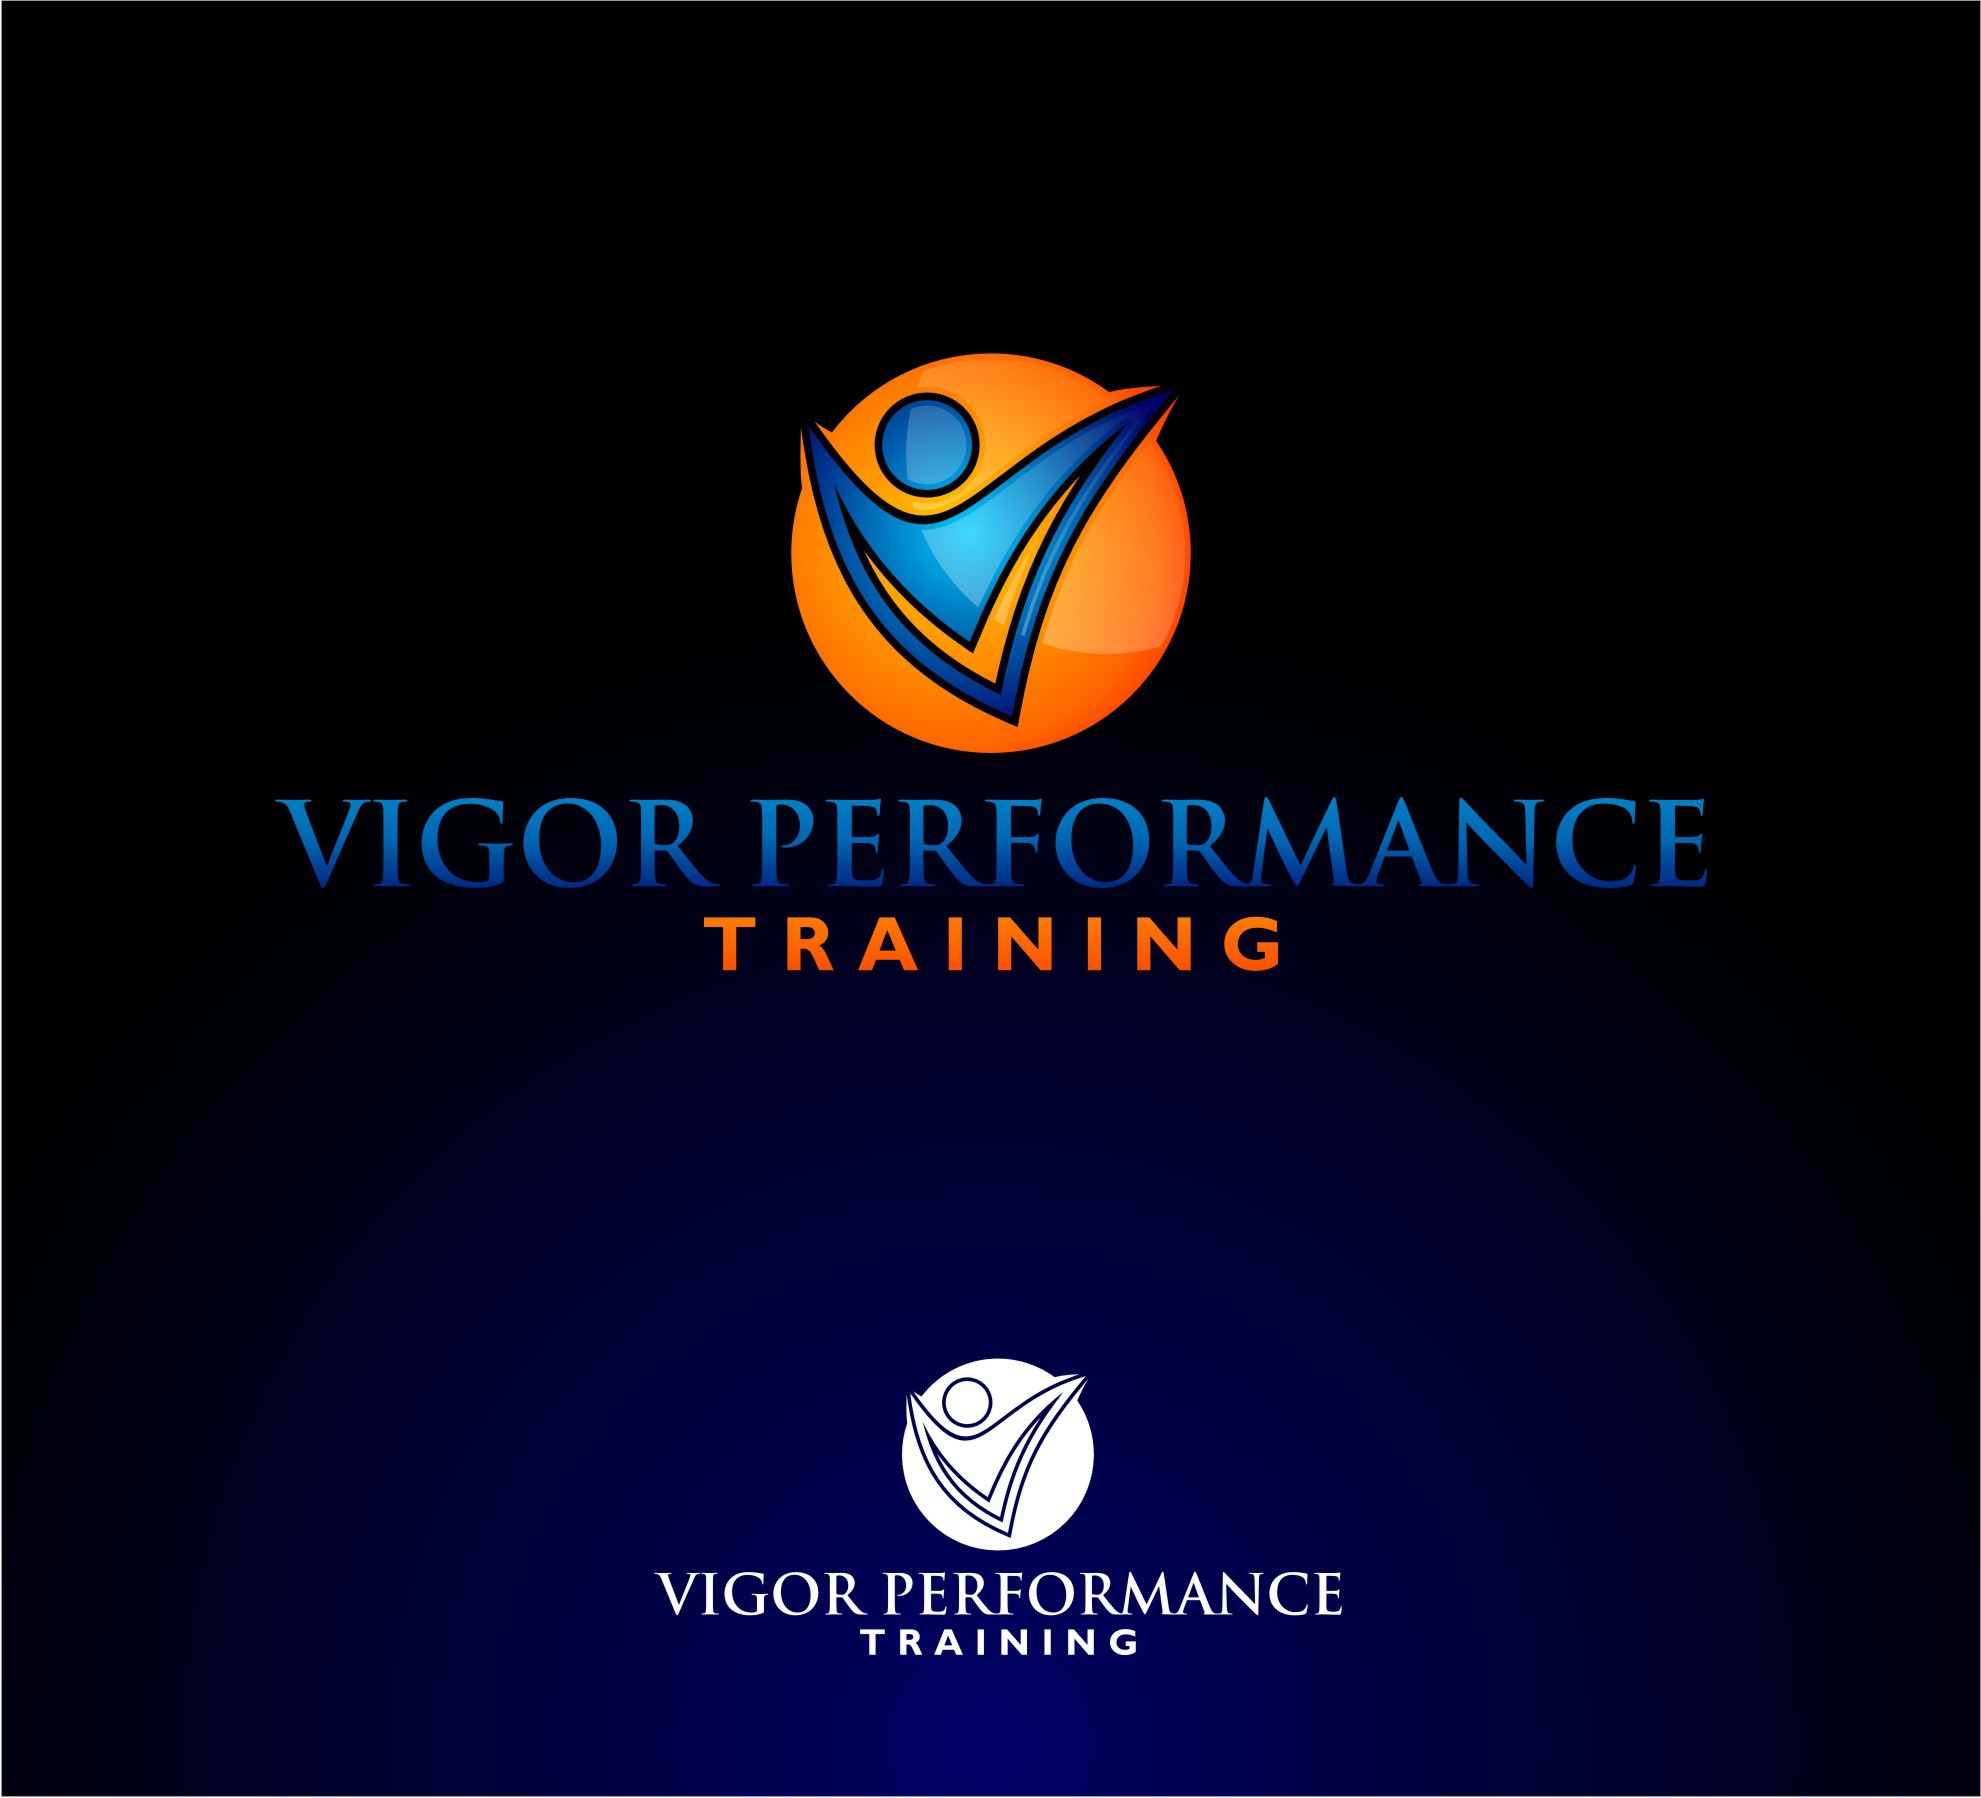 New Fitness Training online based company